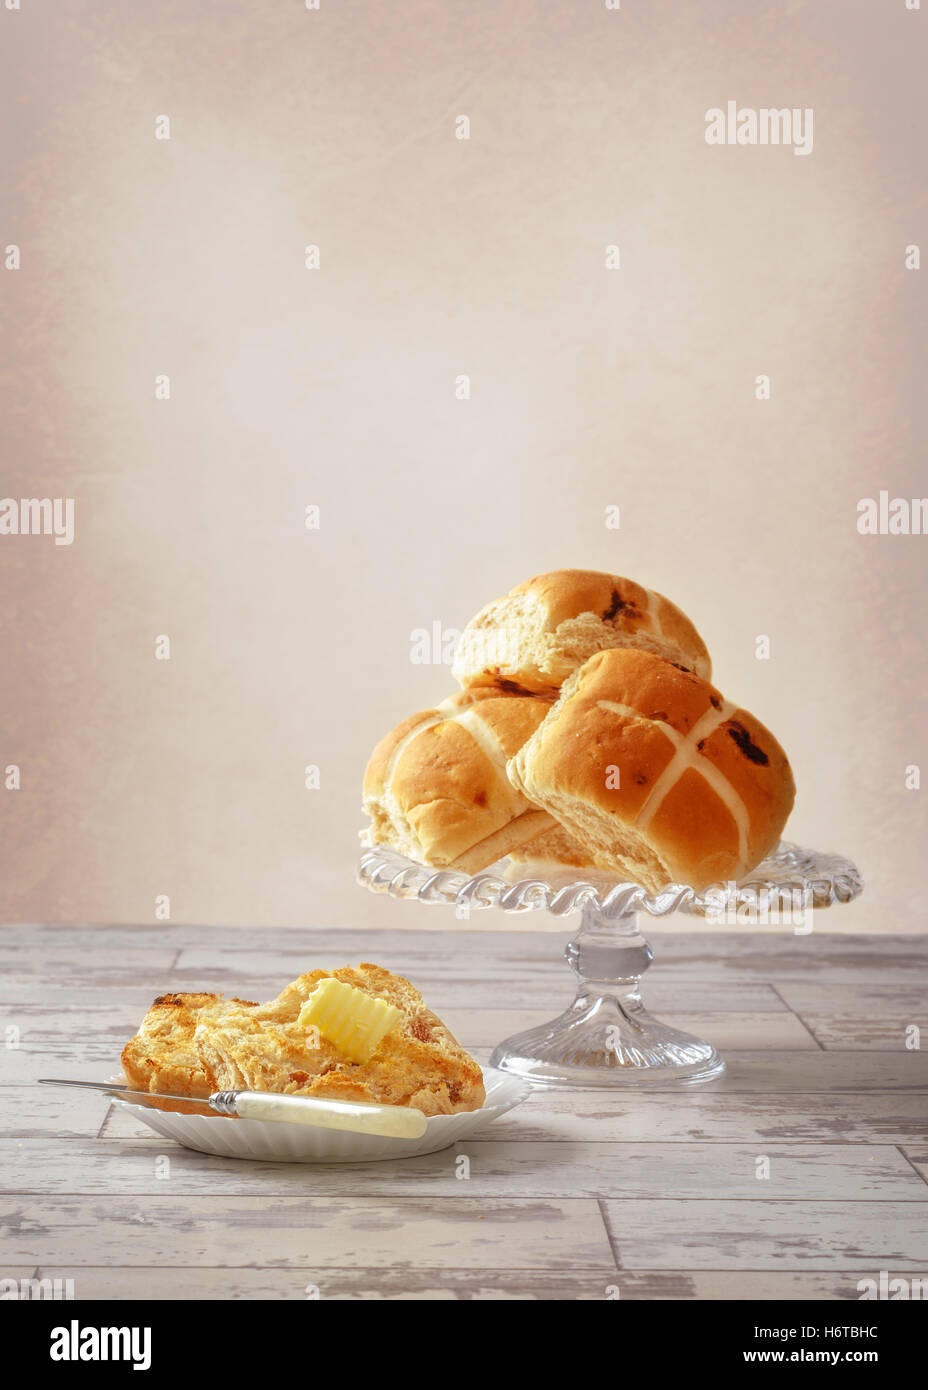 Serving of hot cross bun with butter curl - Stock Image